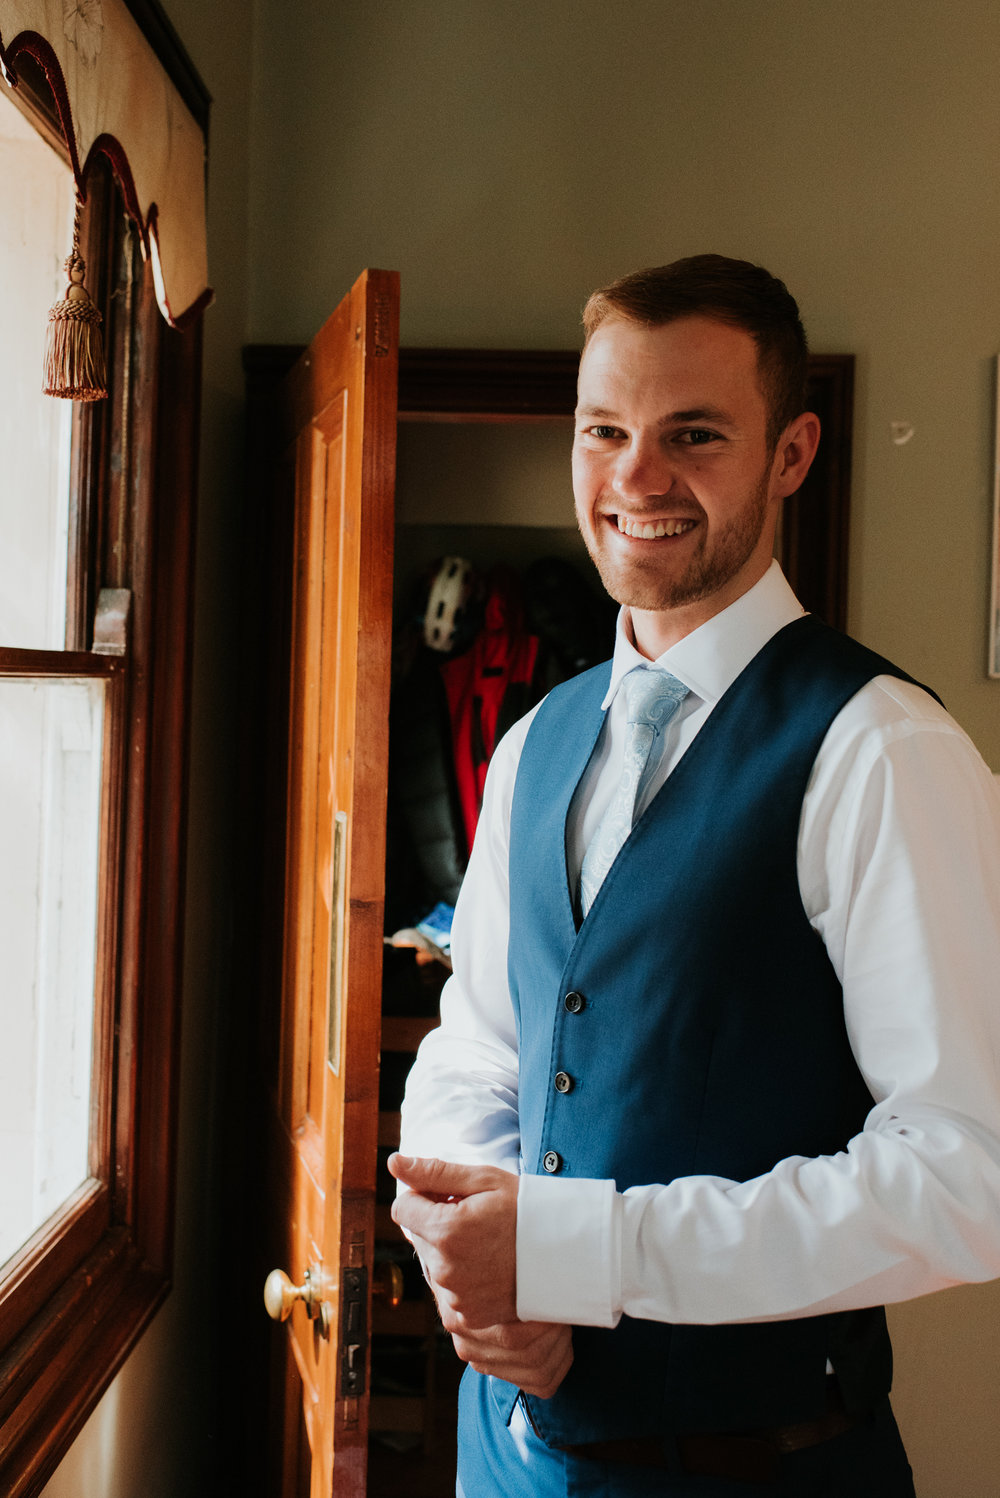 Groom portraits Wokingham